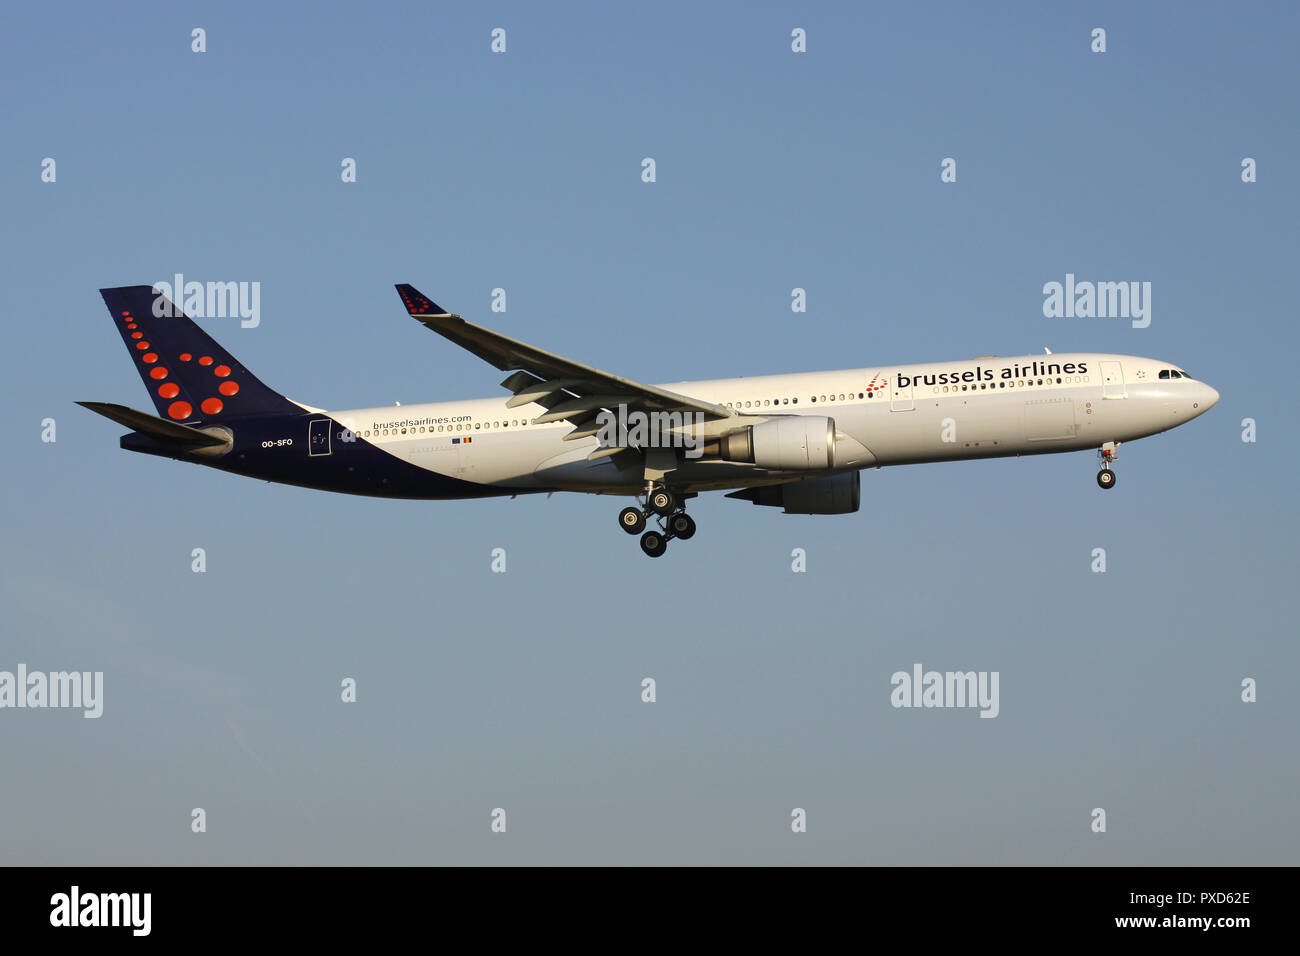 Belgian Brussels Airlines Airbus A330-300 with registration OO-SFO on short final for runway 01 of Brussels Airport. - Stock Image